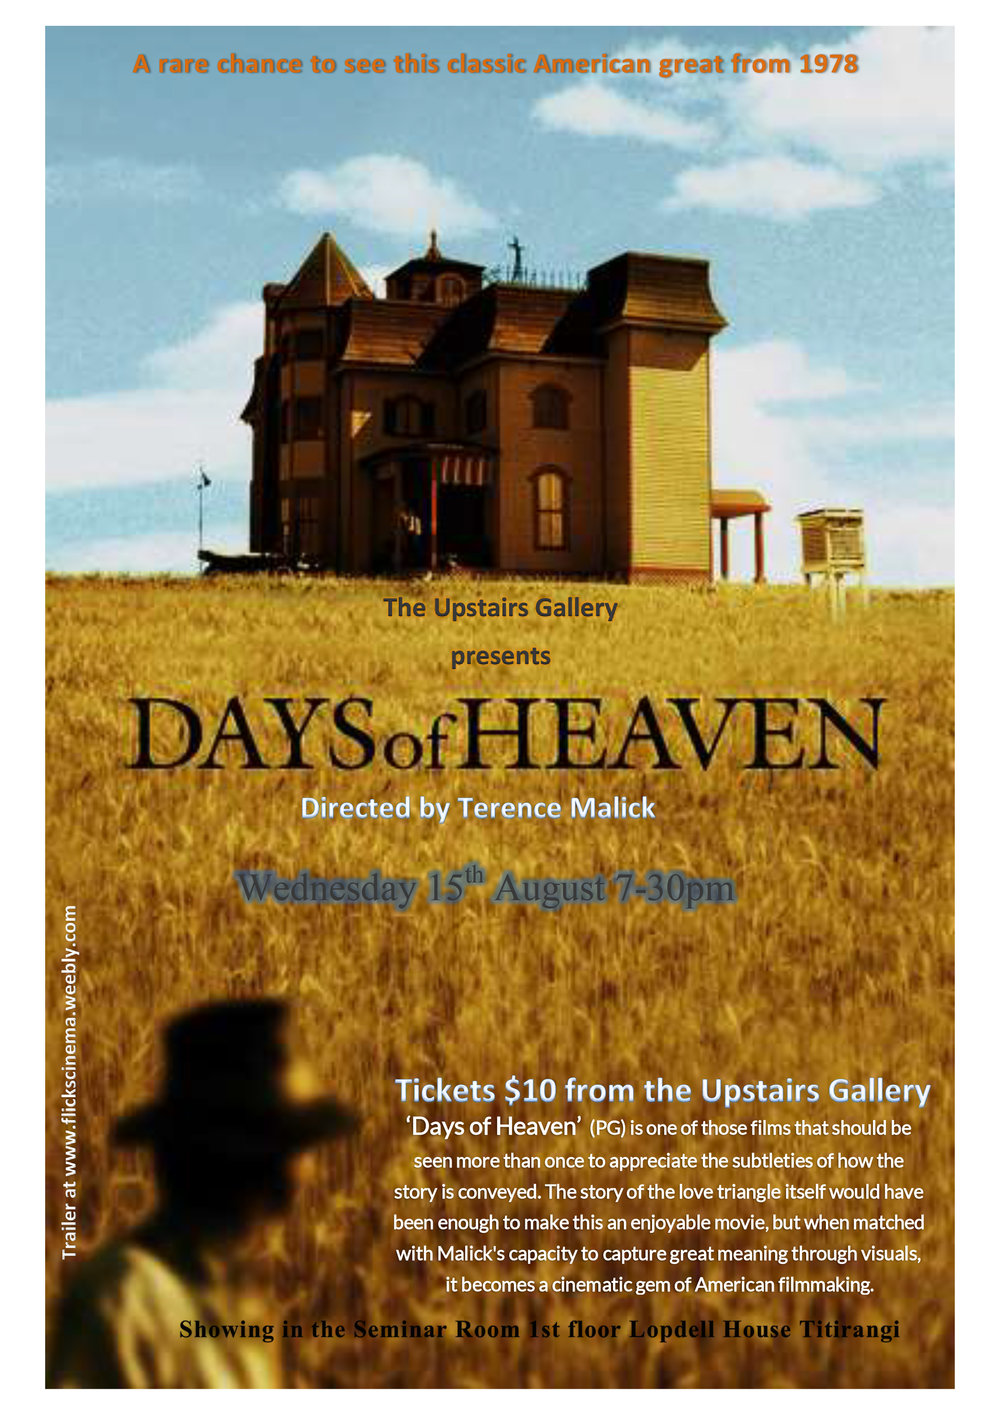 Flicks - Days of heaven poster.jpg